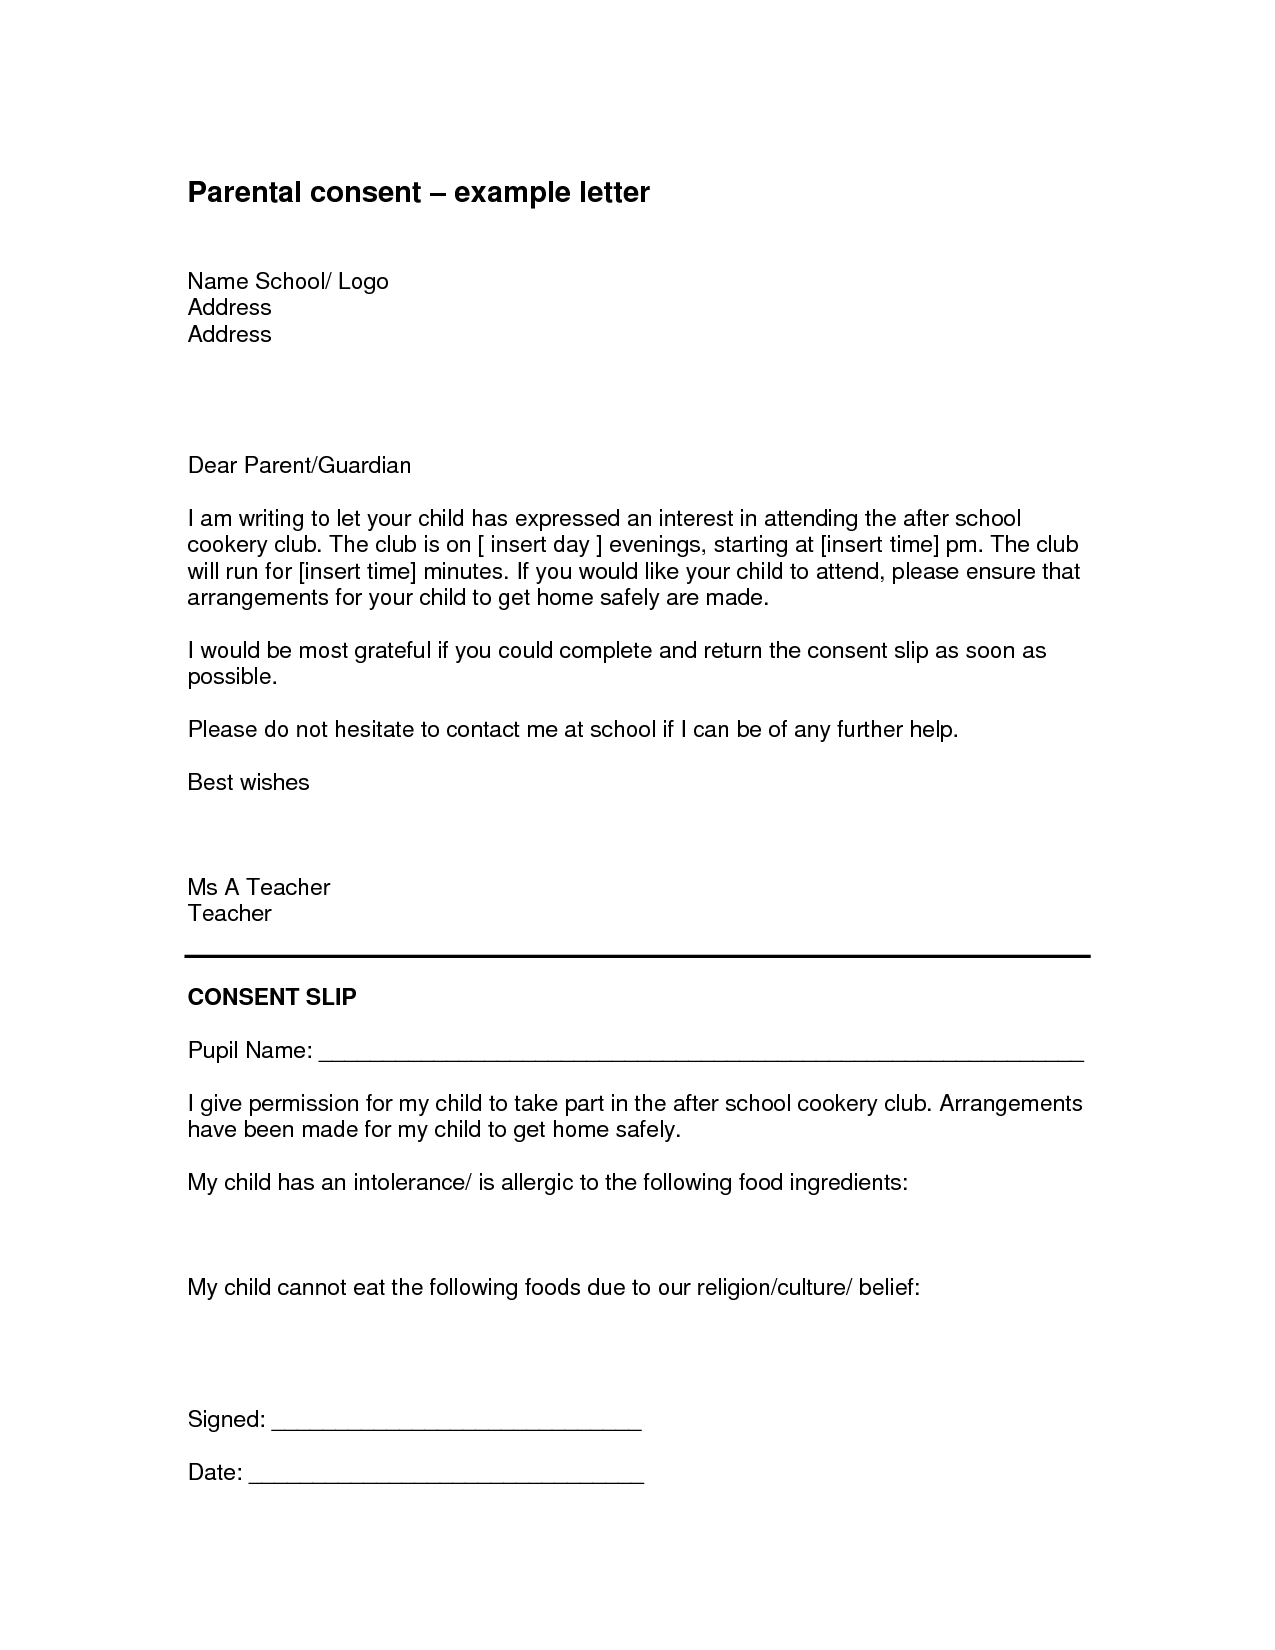 Weekly Letter to Parents Template - Parental Authorization Letter for Example Children Travelling